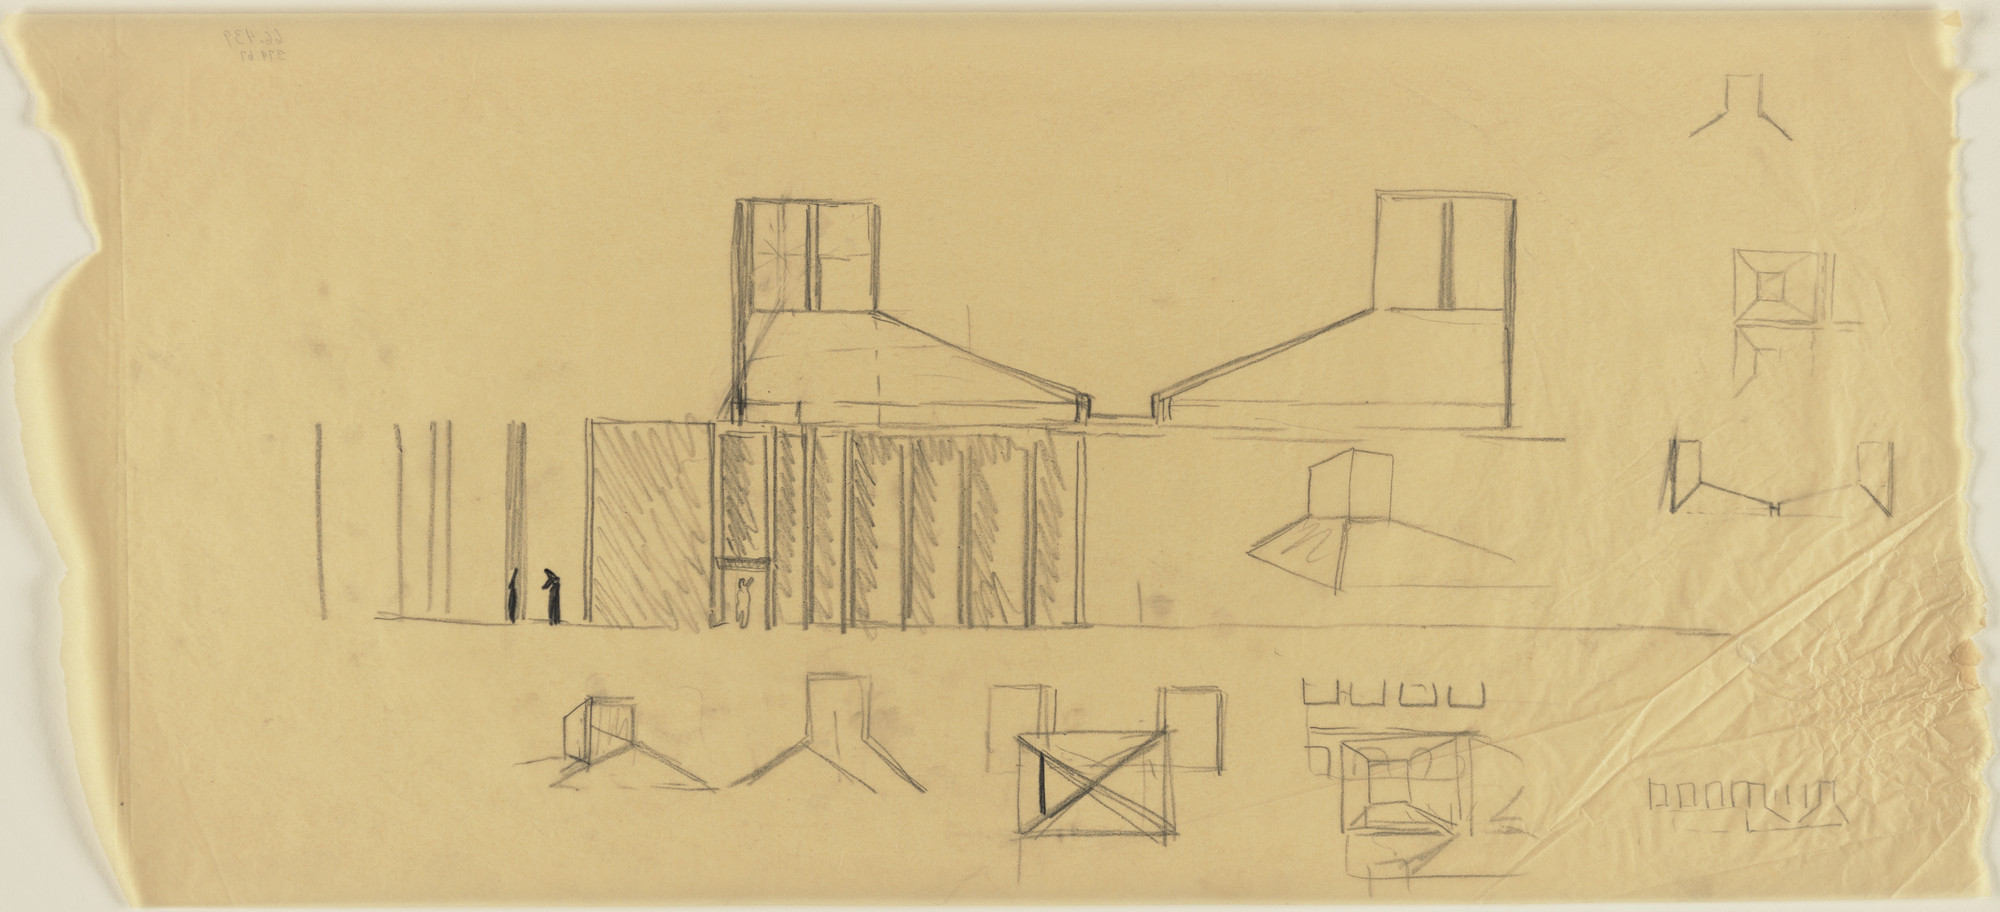 Louis I. Kahn. First Unitarian Church and School, Rochester, New York, Roof-structure and light-element sketches. 1969